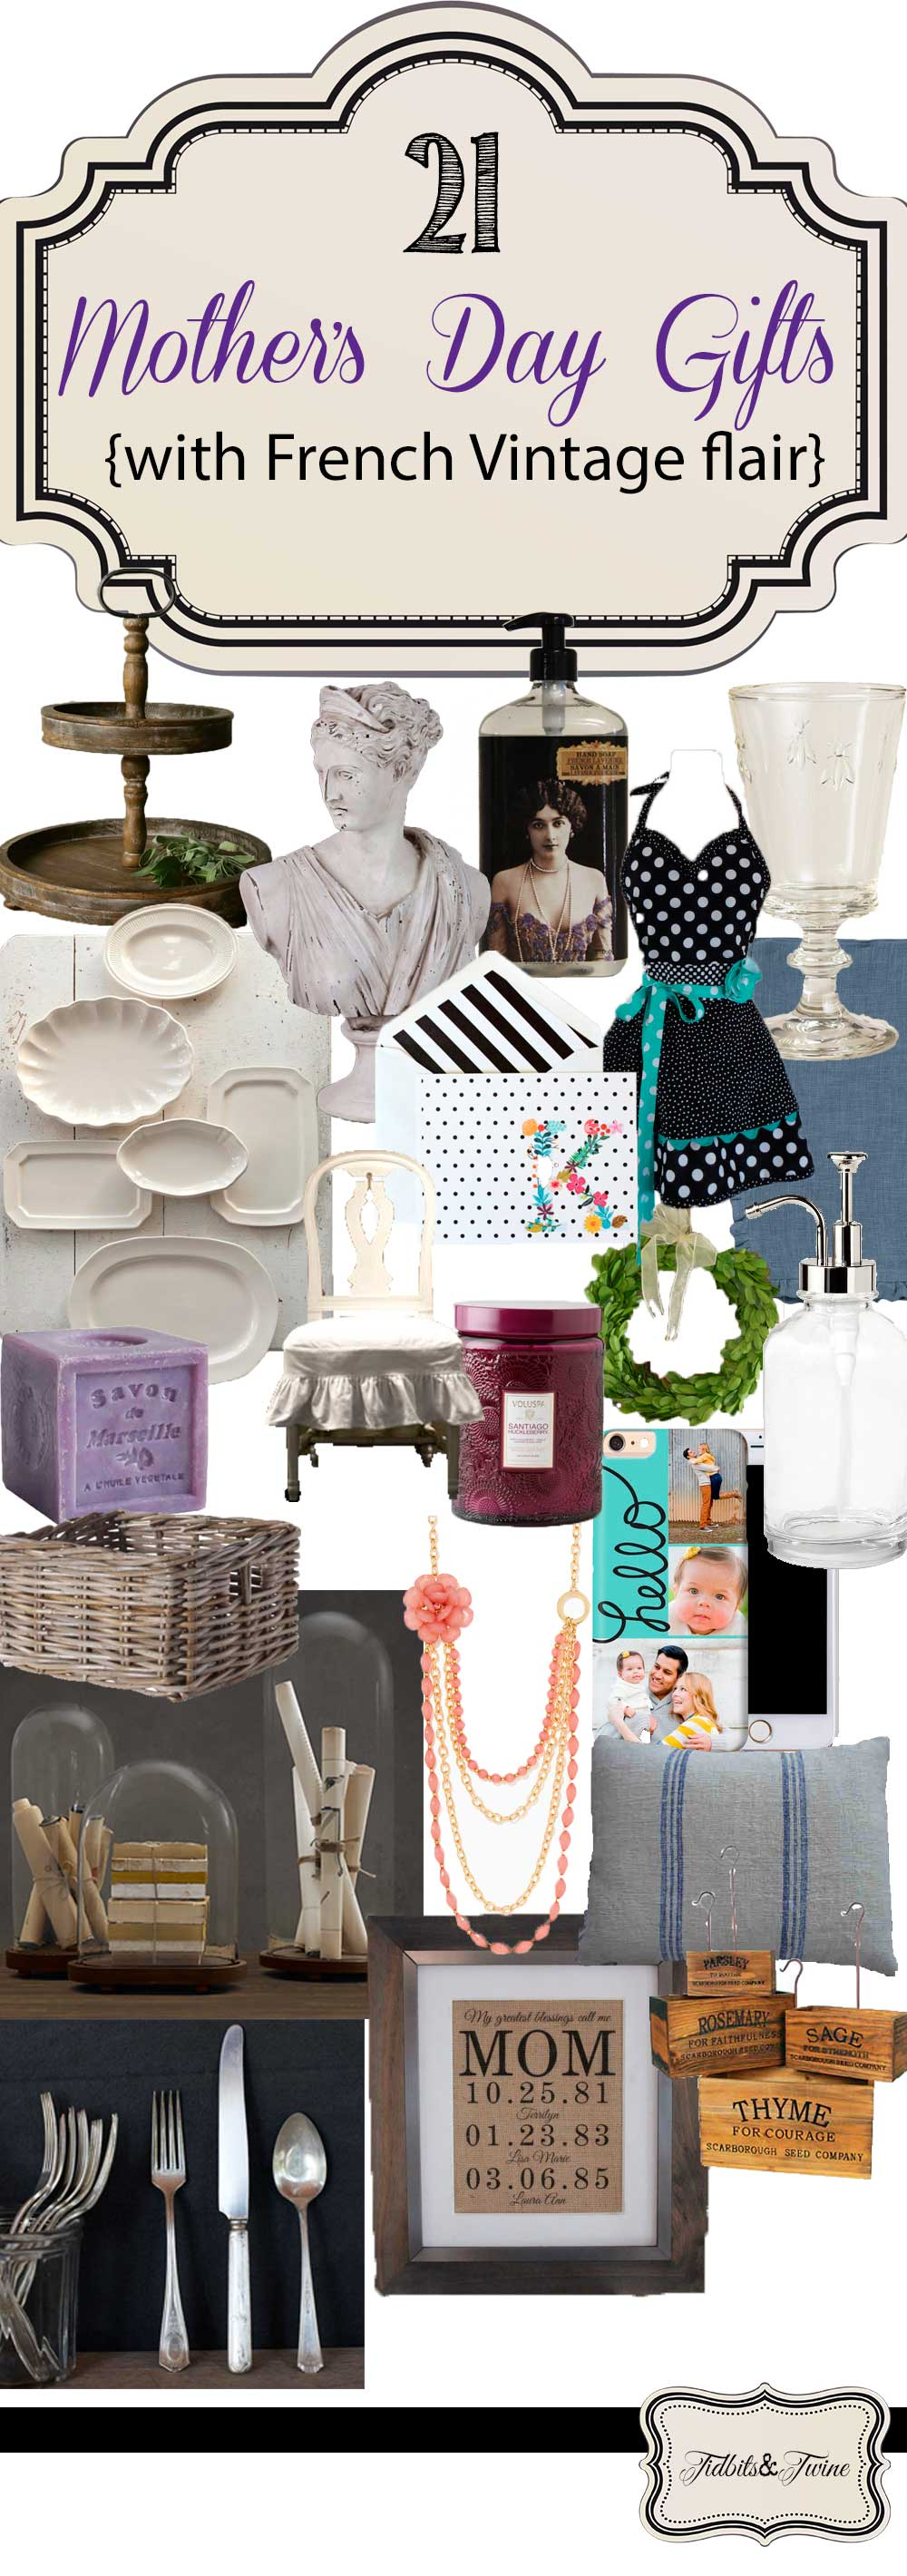 TIDBITS&TWINE Mother's Day Gift Ideas 2015 that have a French Vintage flair